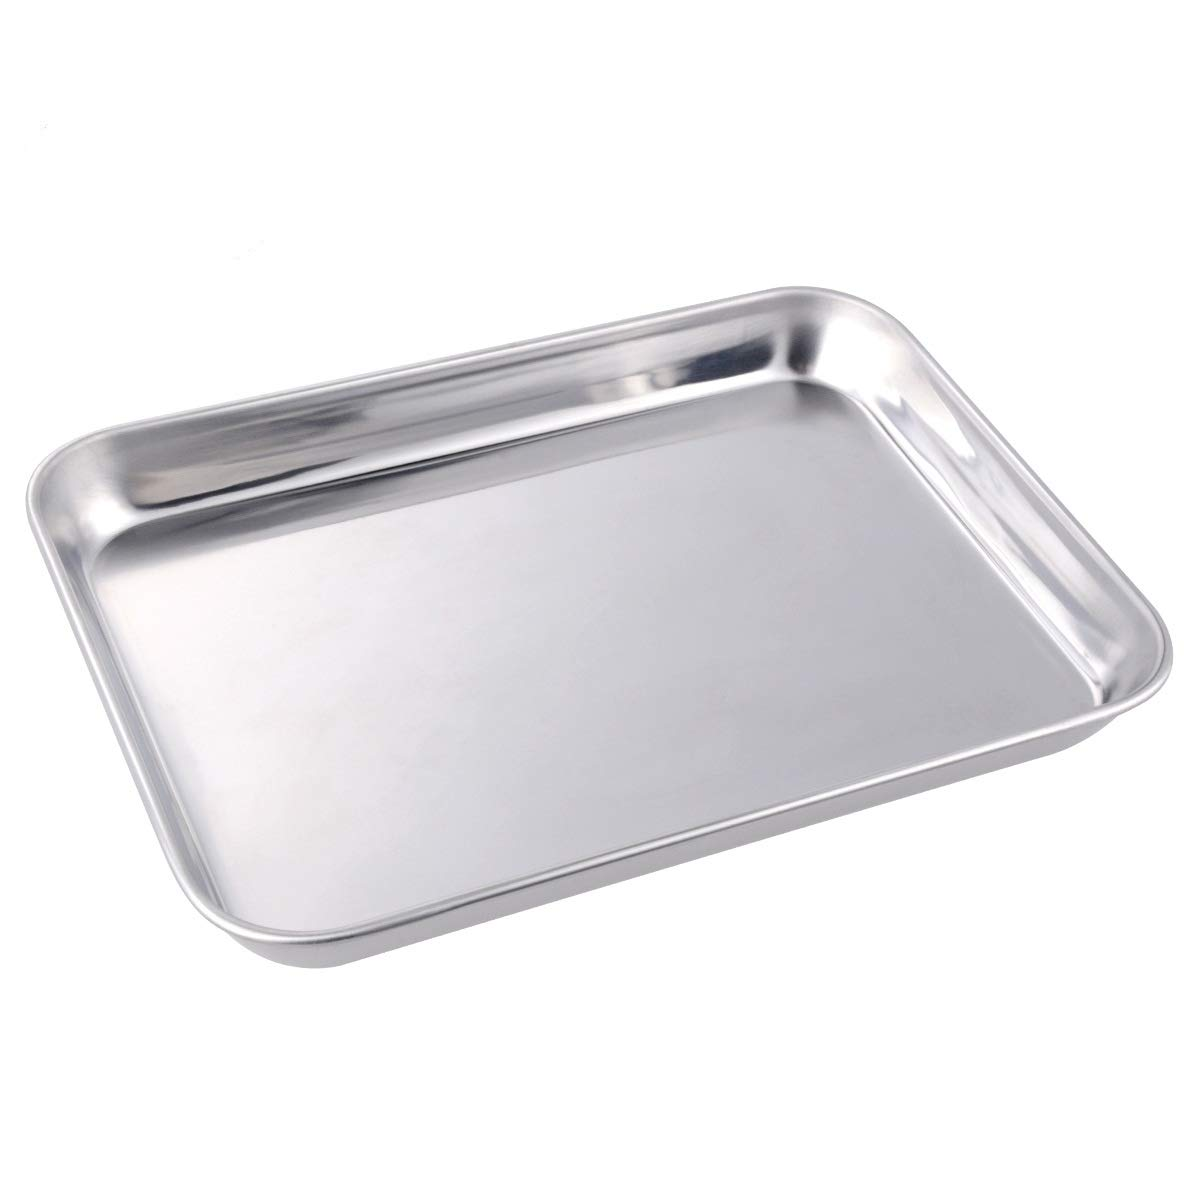 Cookie Baking Sheet 1 Pieces, Stainless Steel Non-Toxic Non-Stick & Healthy Cookie Baking Pan Mirror Finish, Rustproof and Easy Cleaning (1pcs 15.75x11.81x0.98 inch)